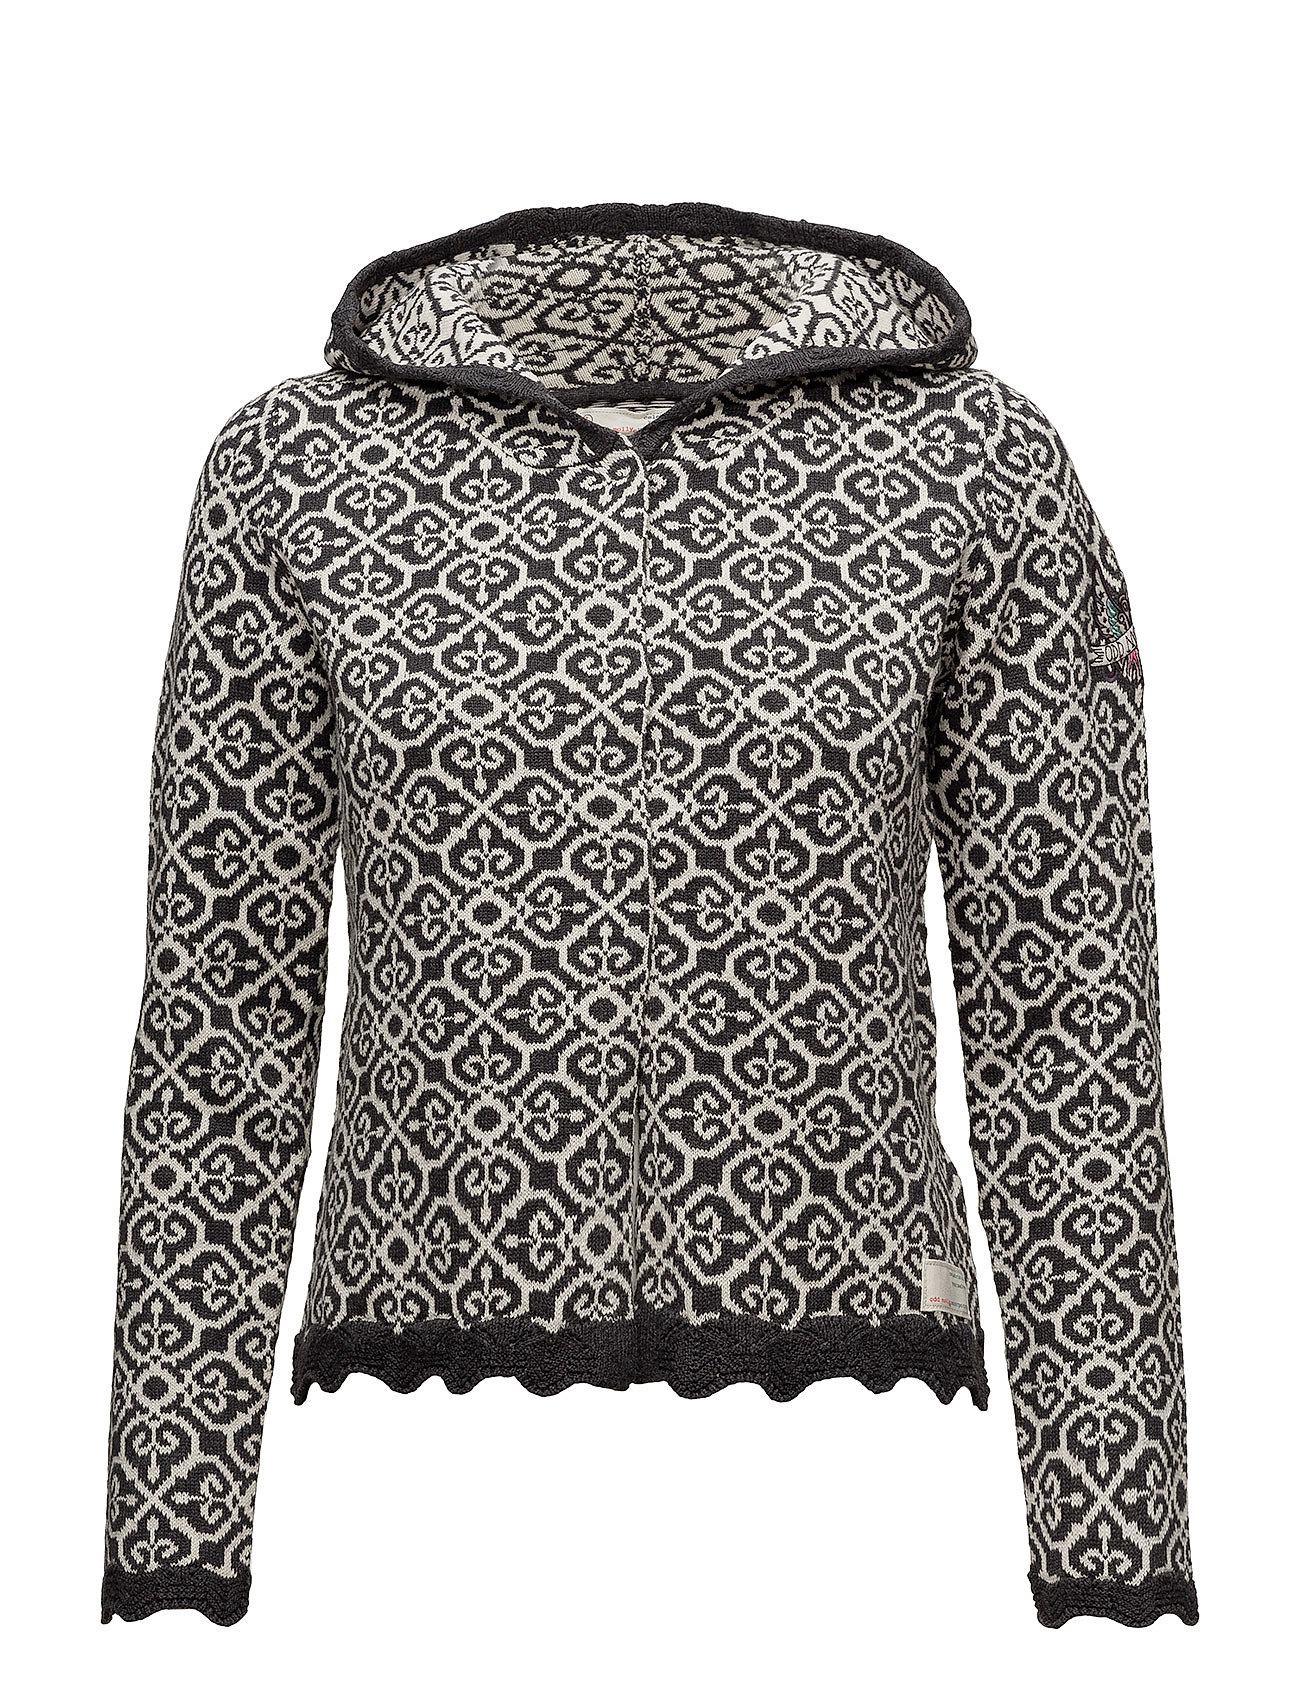 longing hood cardigan Odd Molly New Lower Prices XicbGg